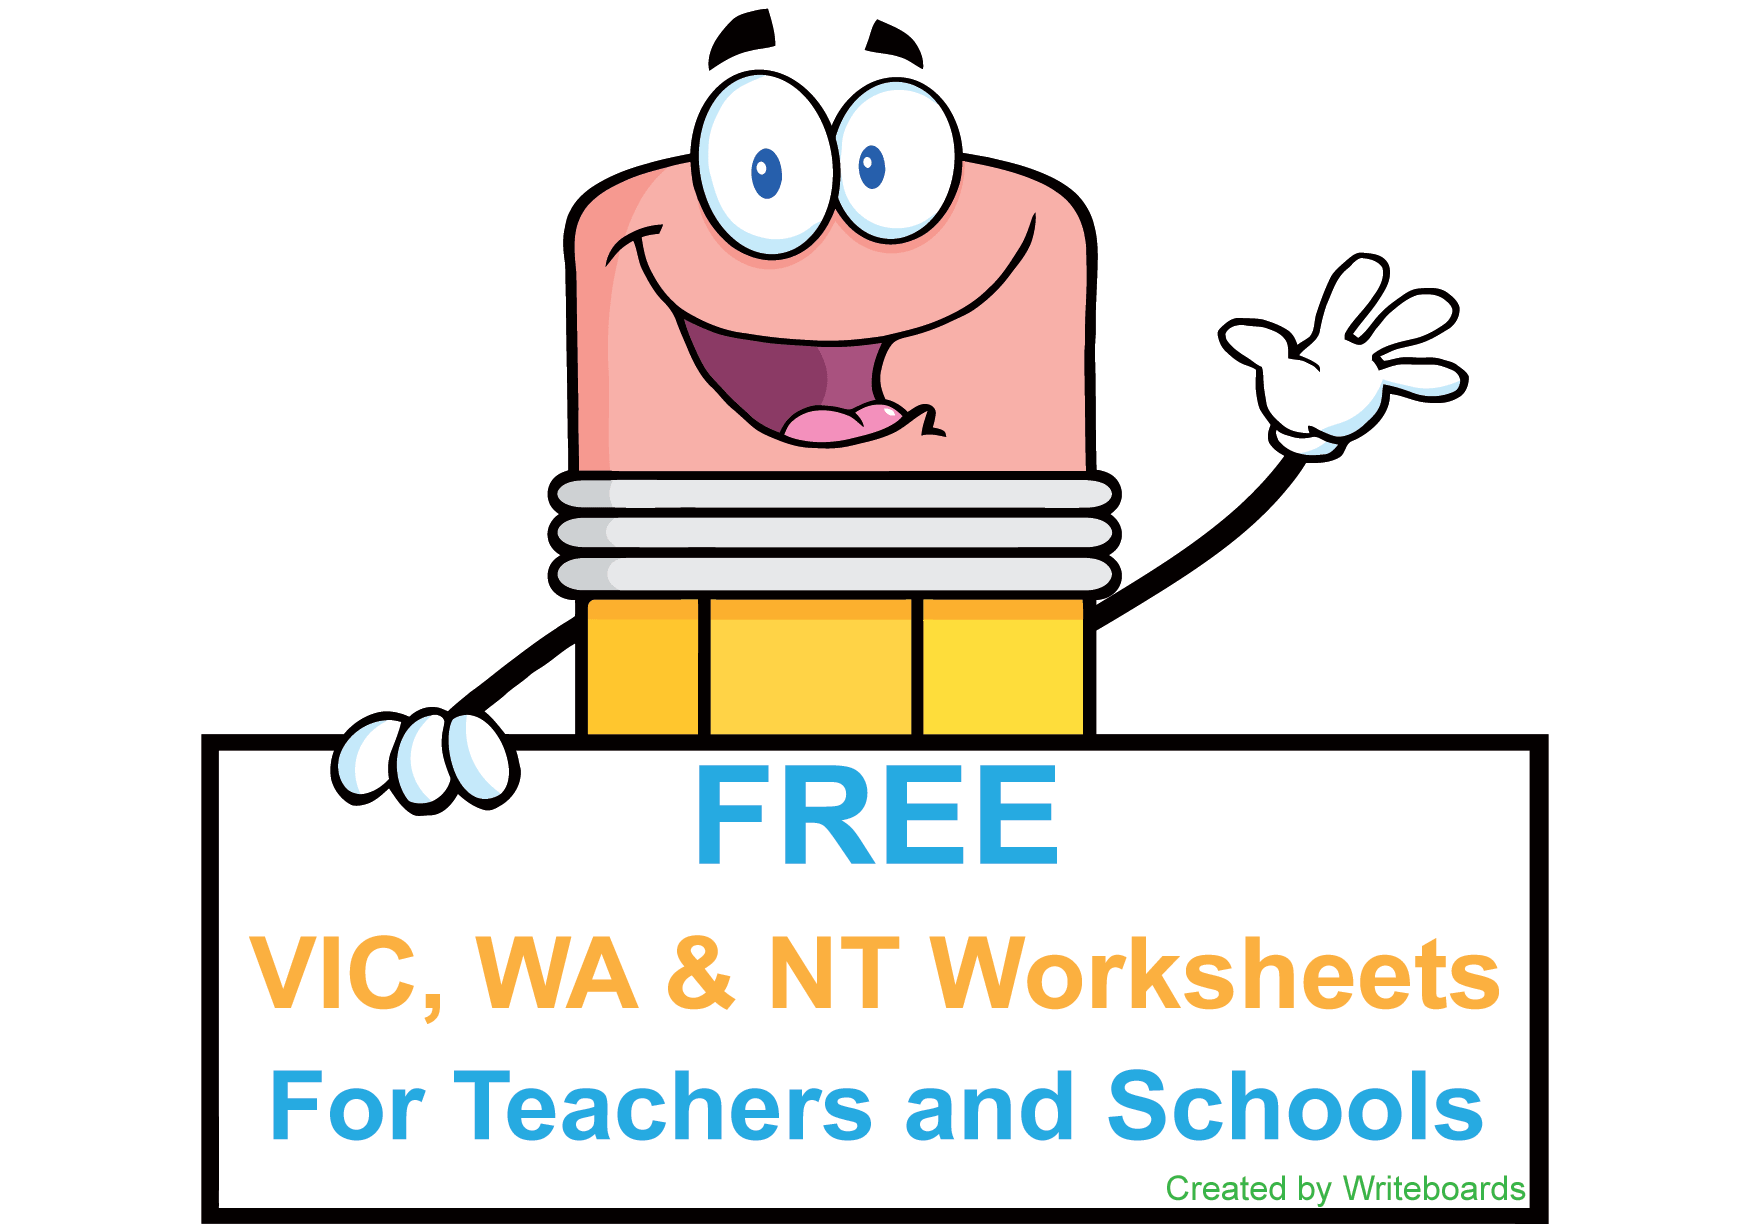 Free VIC Modern Cursive Font Handwriting Worksheets for Teachers & Sch